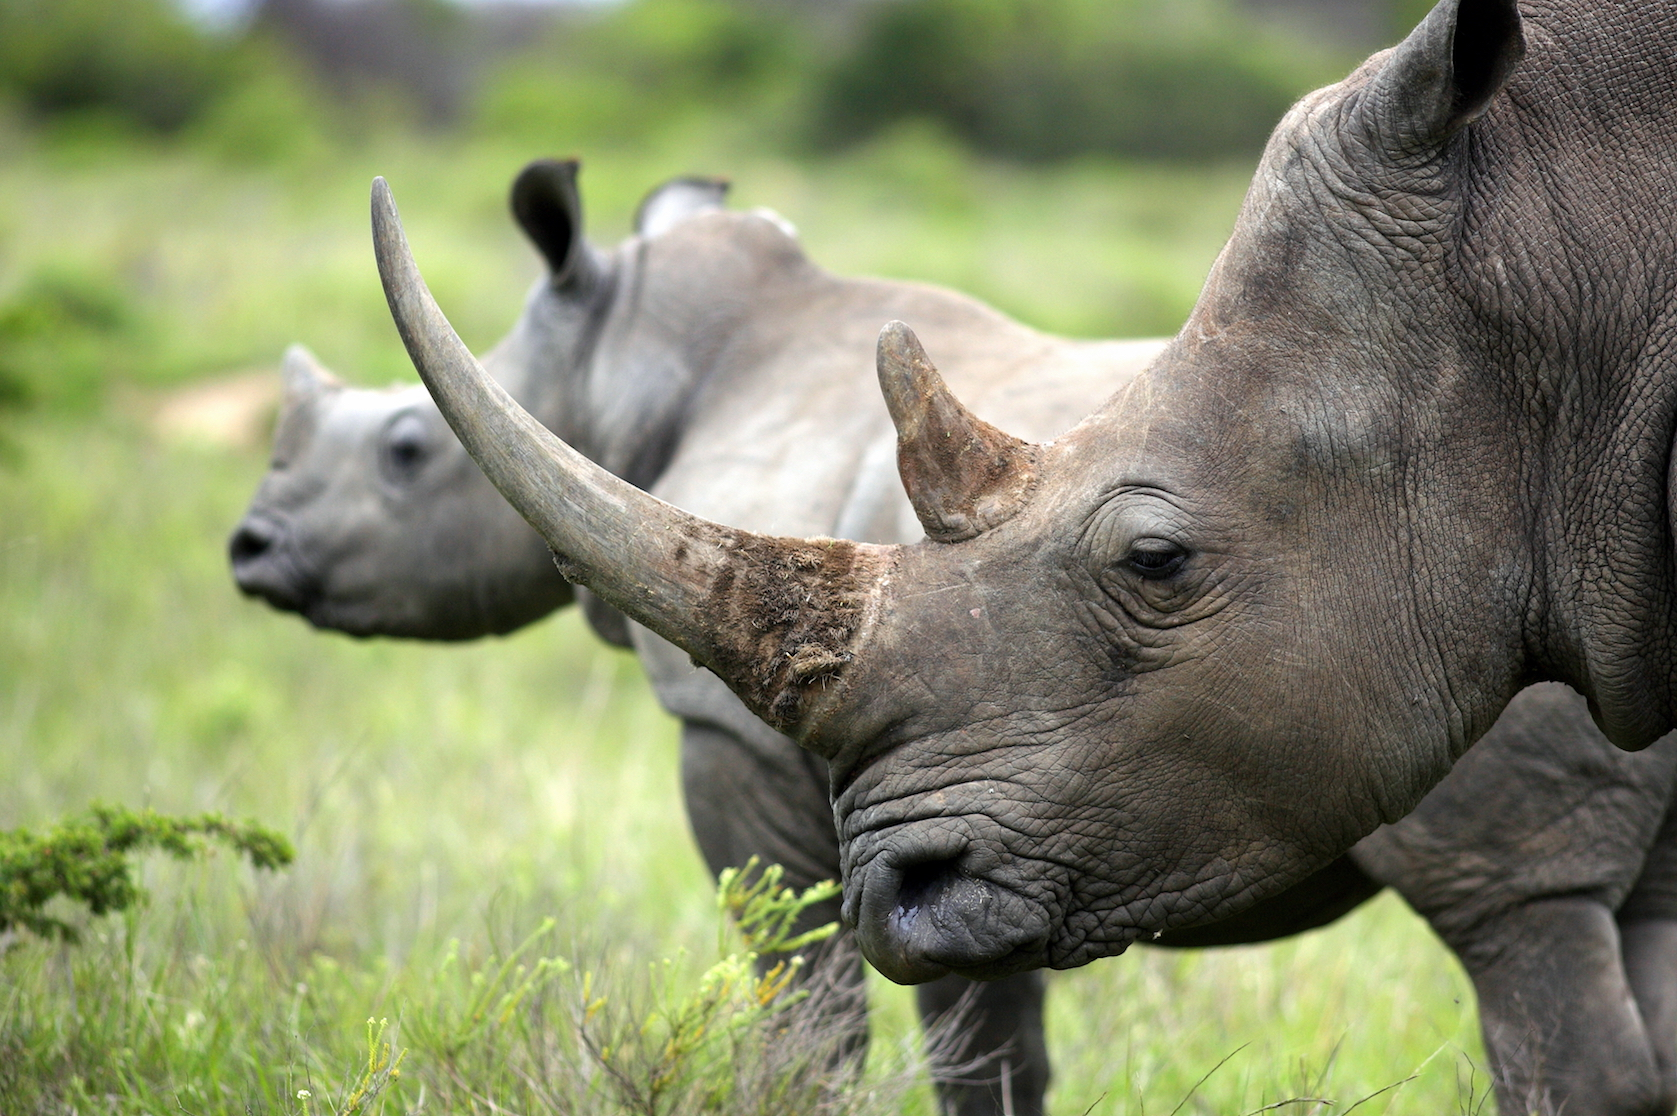 Authorities, relying on a tip, seized 18 rhinoceros horns crated as art objects at the Malaysian airport in Kuala Lumpur.